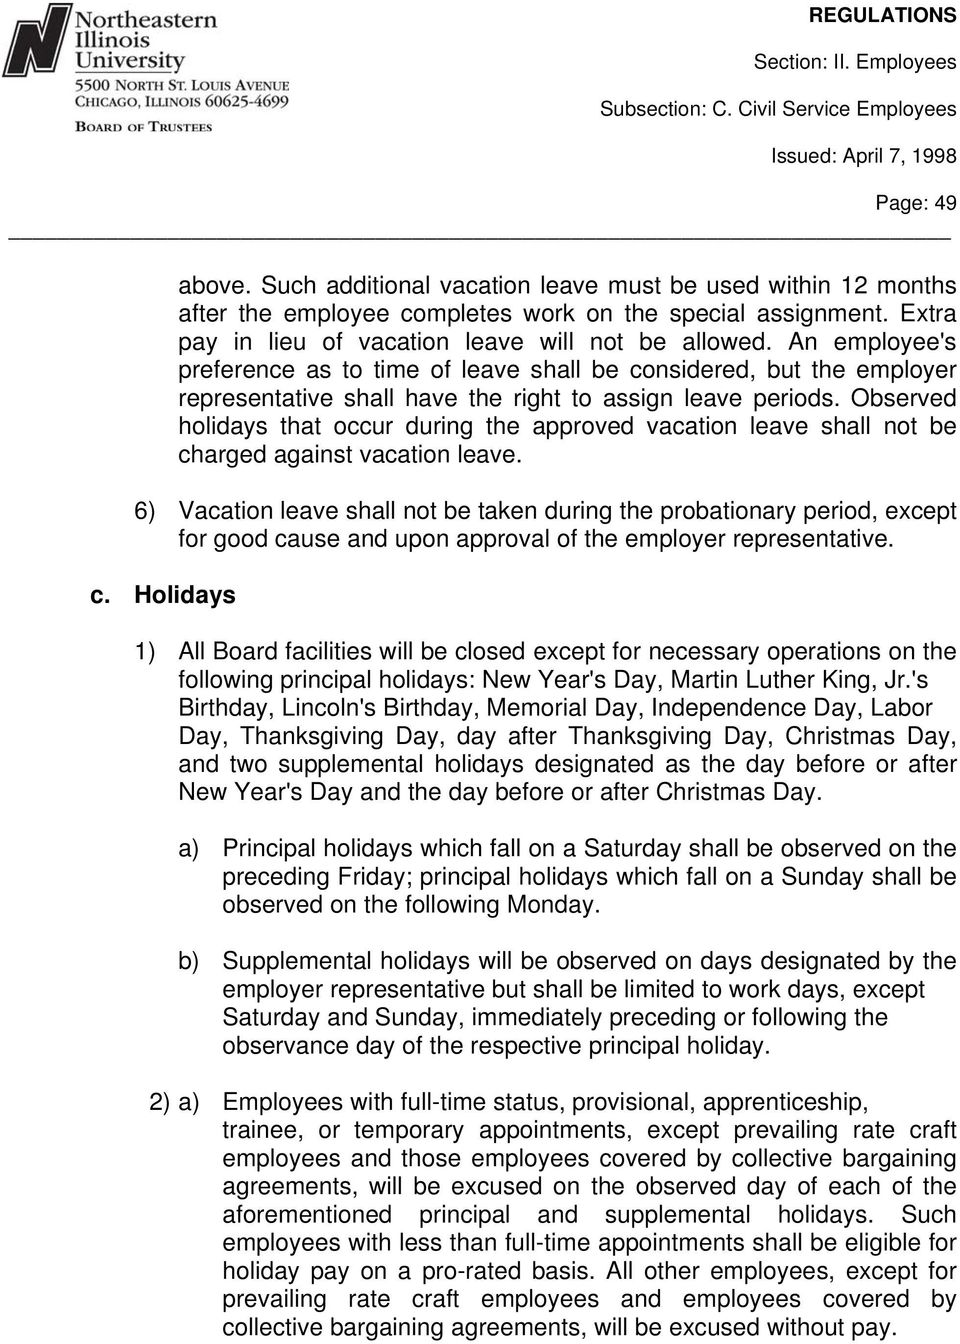 Observed holidays that occur during the approved vacation leave shall not be charged against vacation leave.